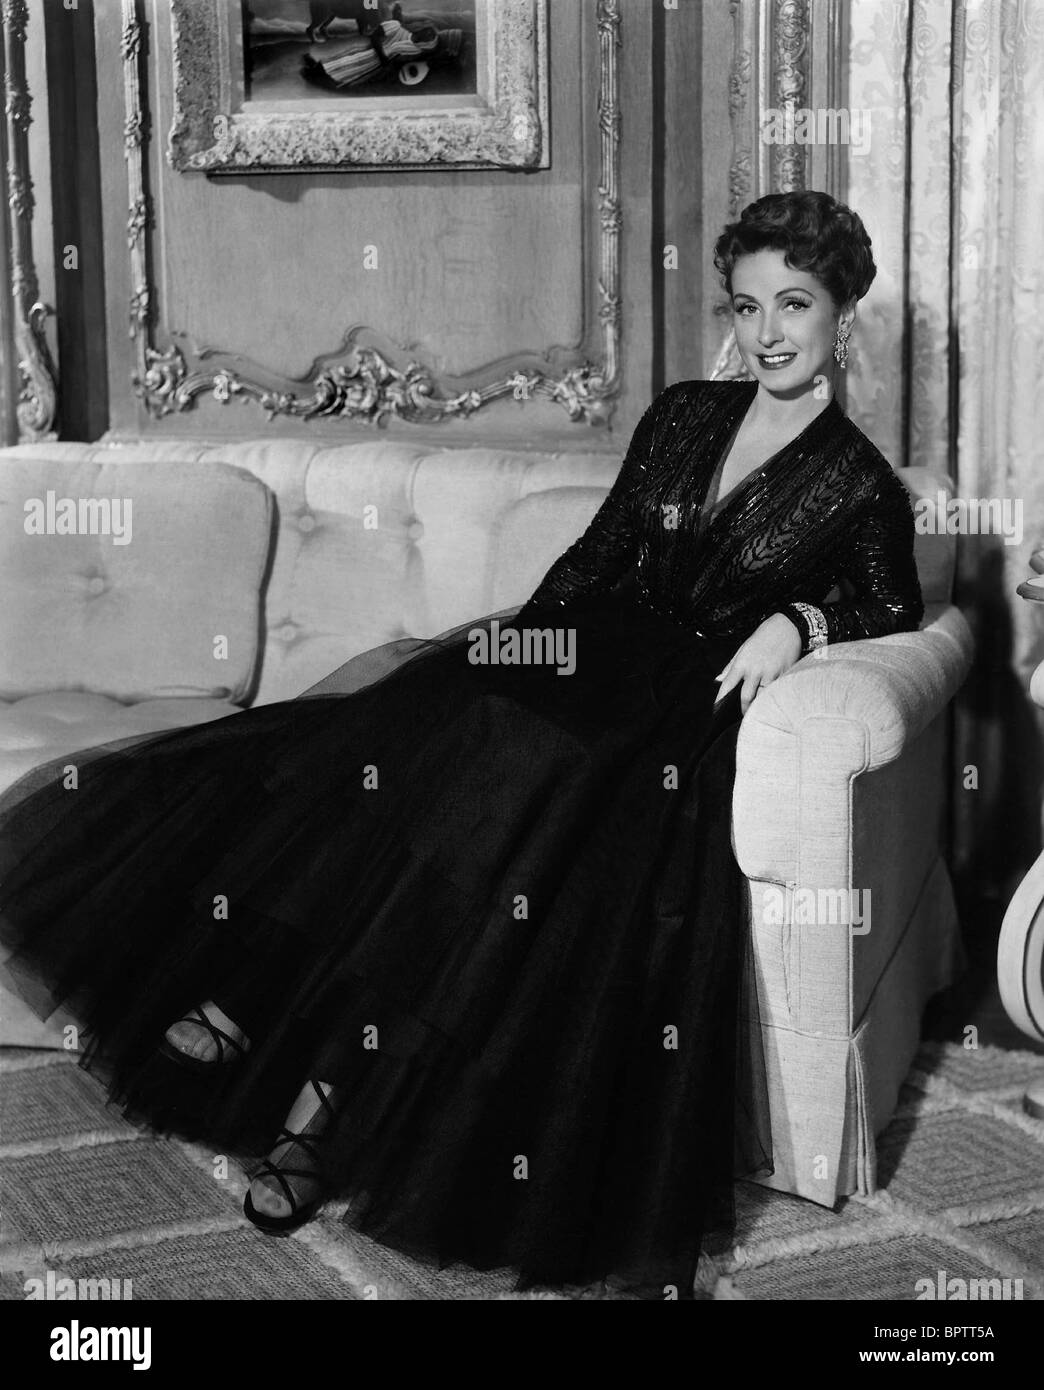 DANIELLE DARRIEUX ACTRESS (1950) - Stock Image